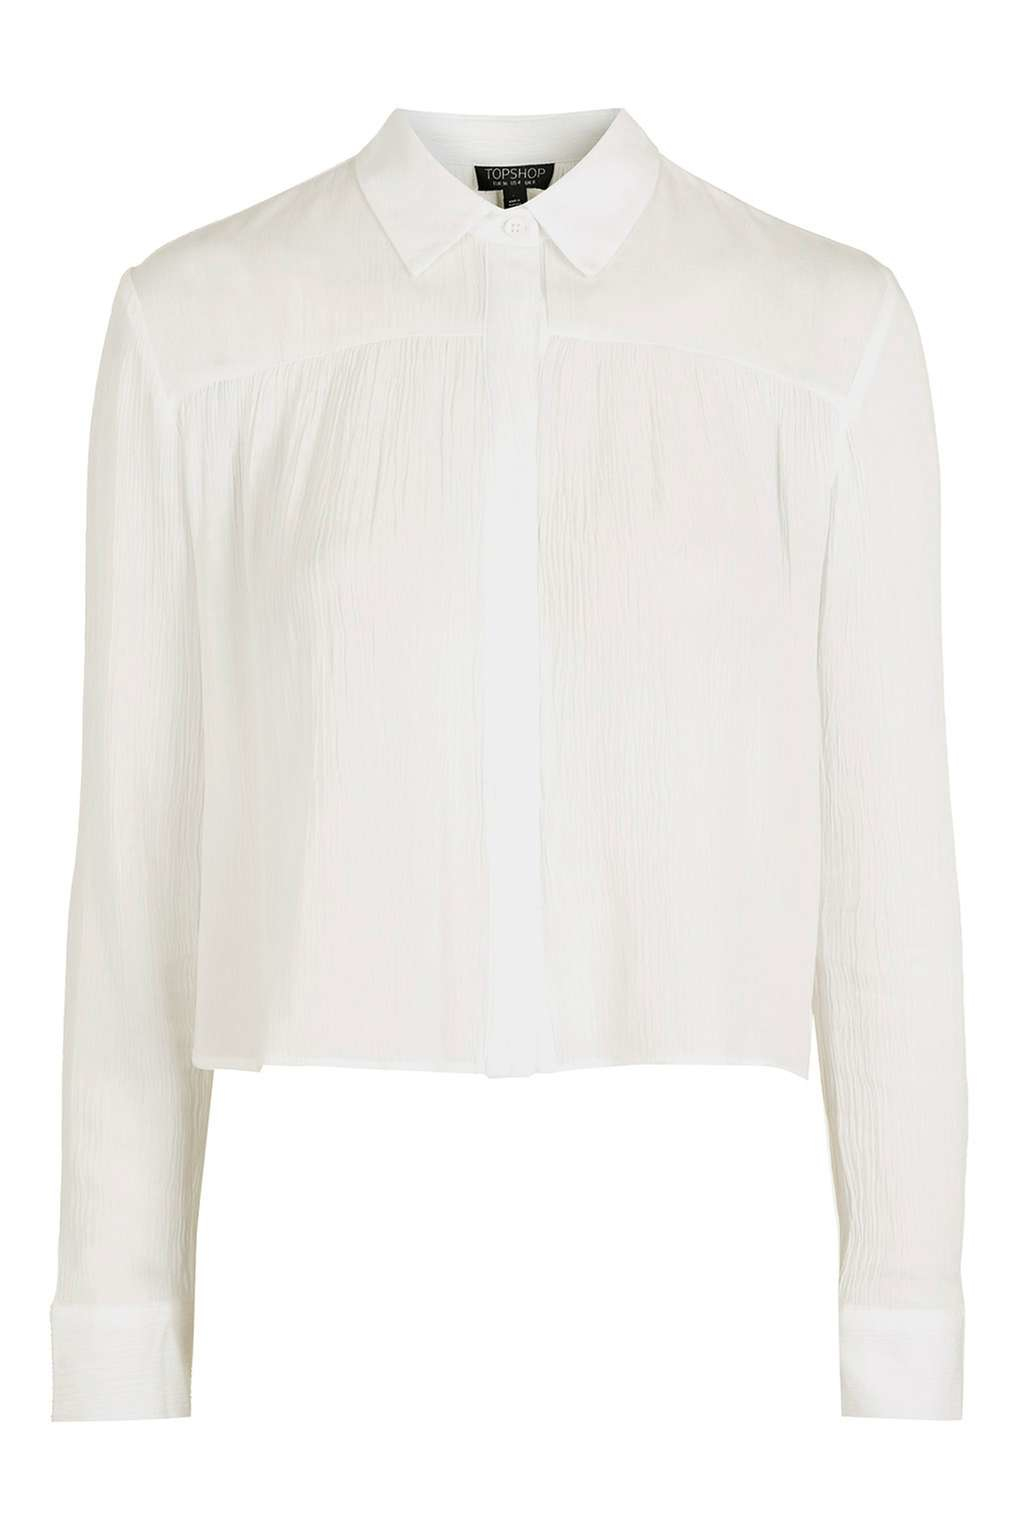 Topshop tie back cropped shirt in white lyst for How to make a tie back shirt